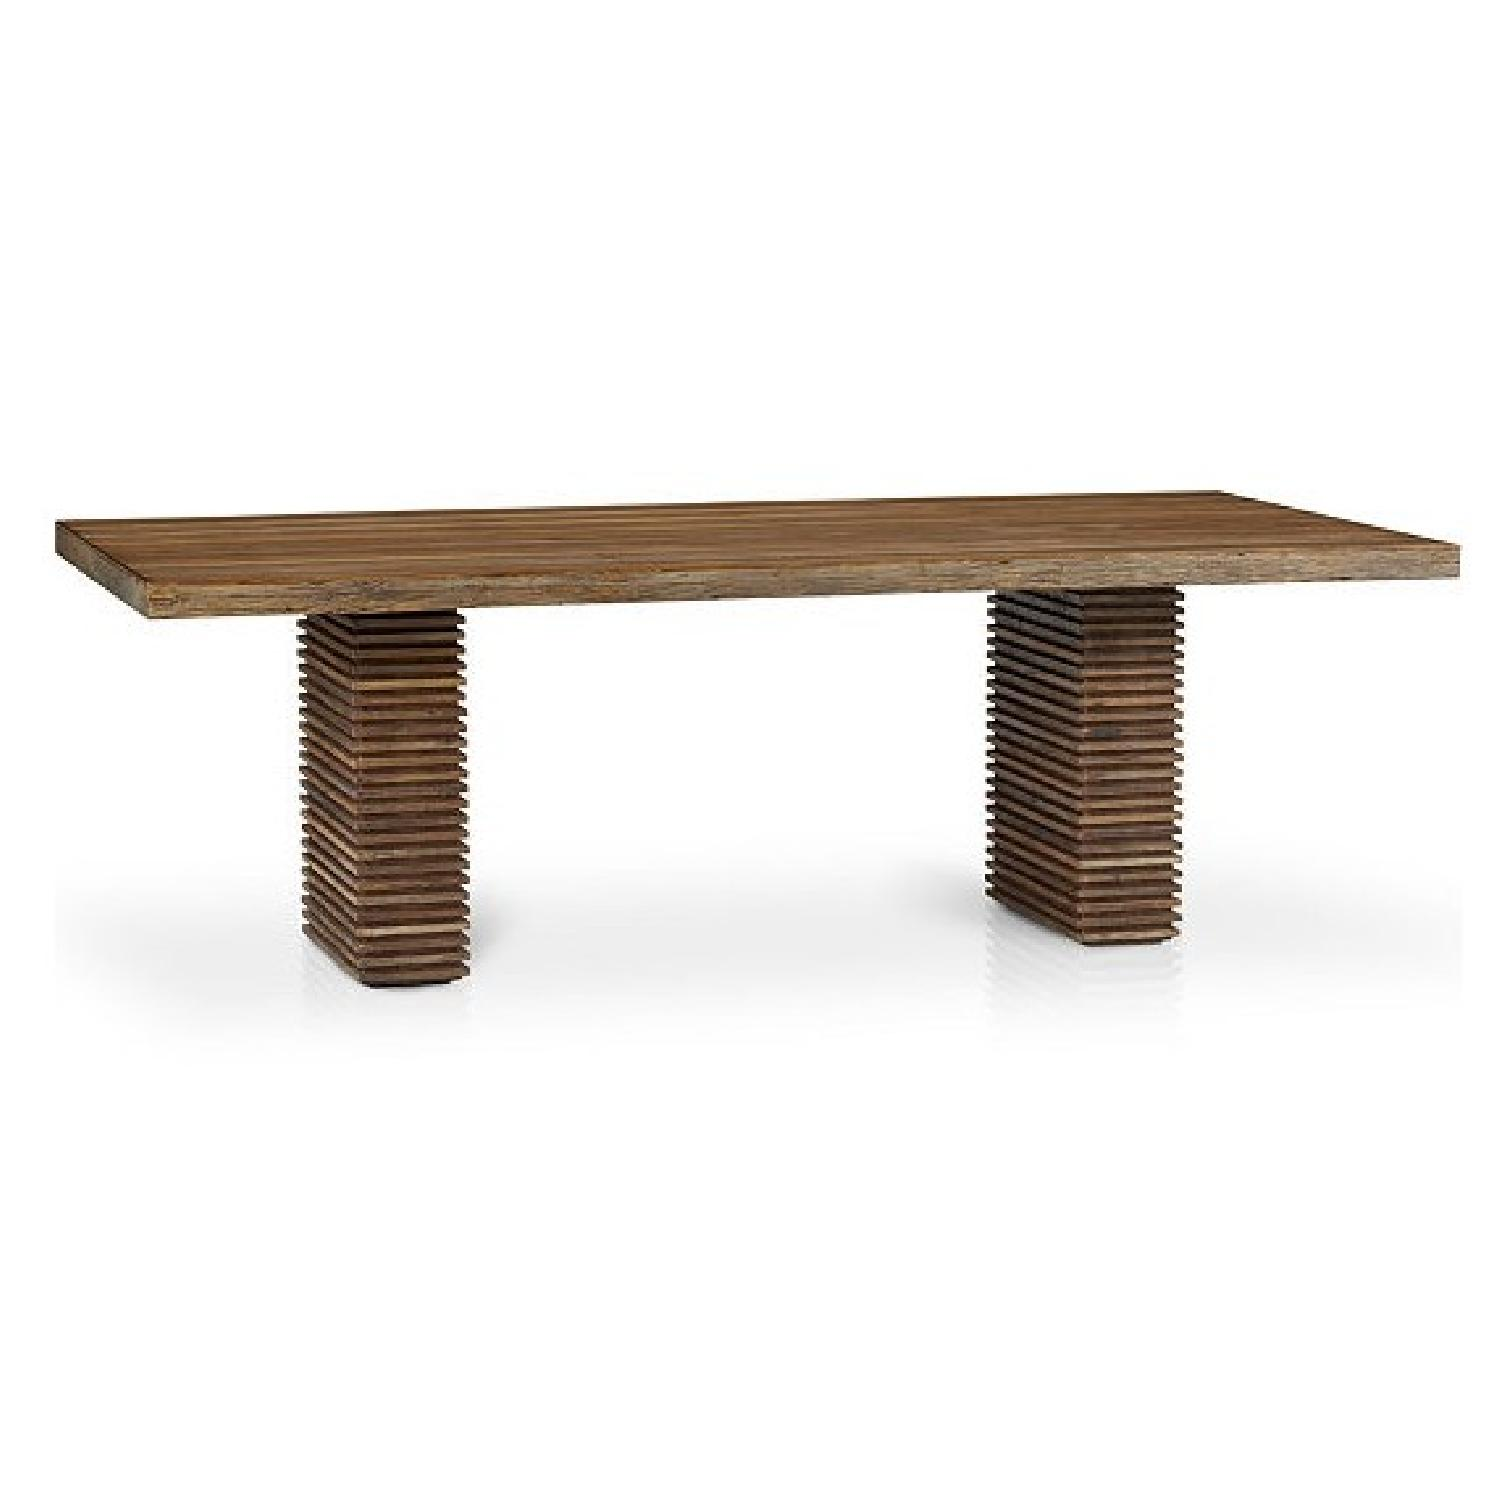 Crate & Barrel Paloma II Reclaimed Wood Dining Table